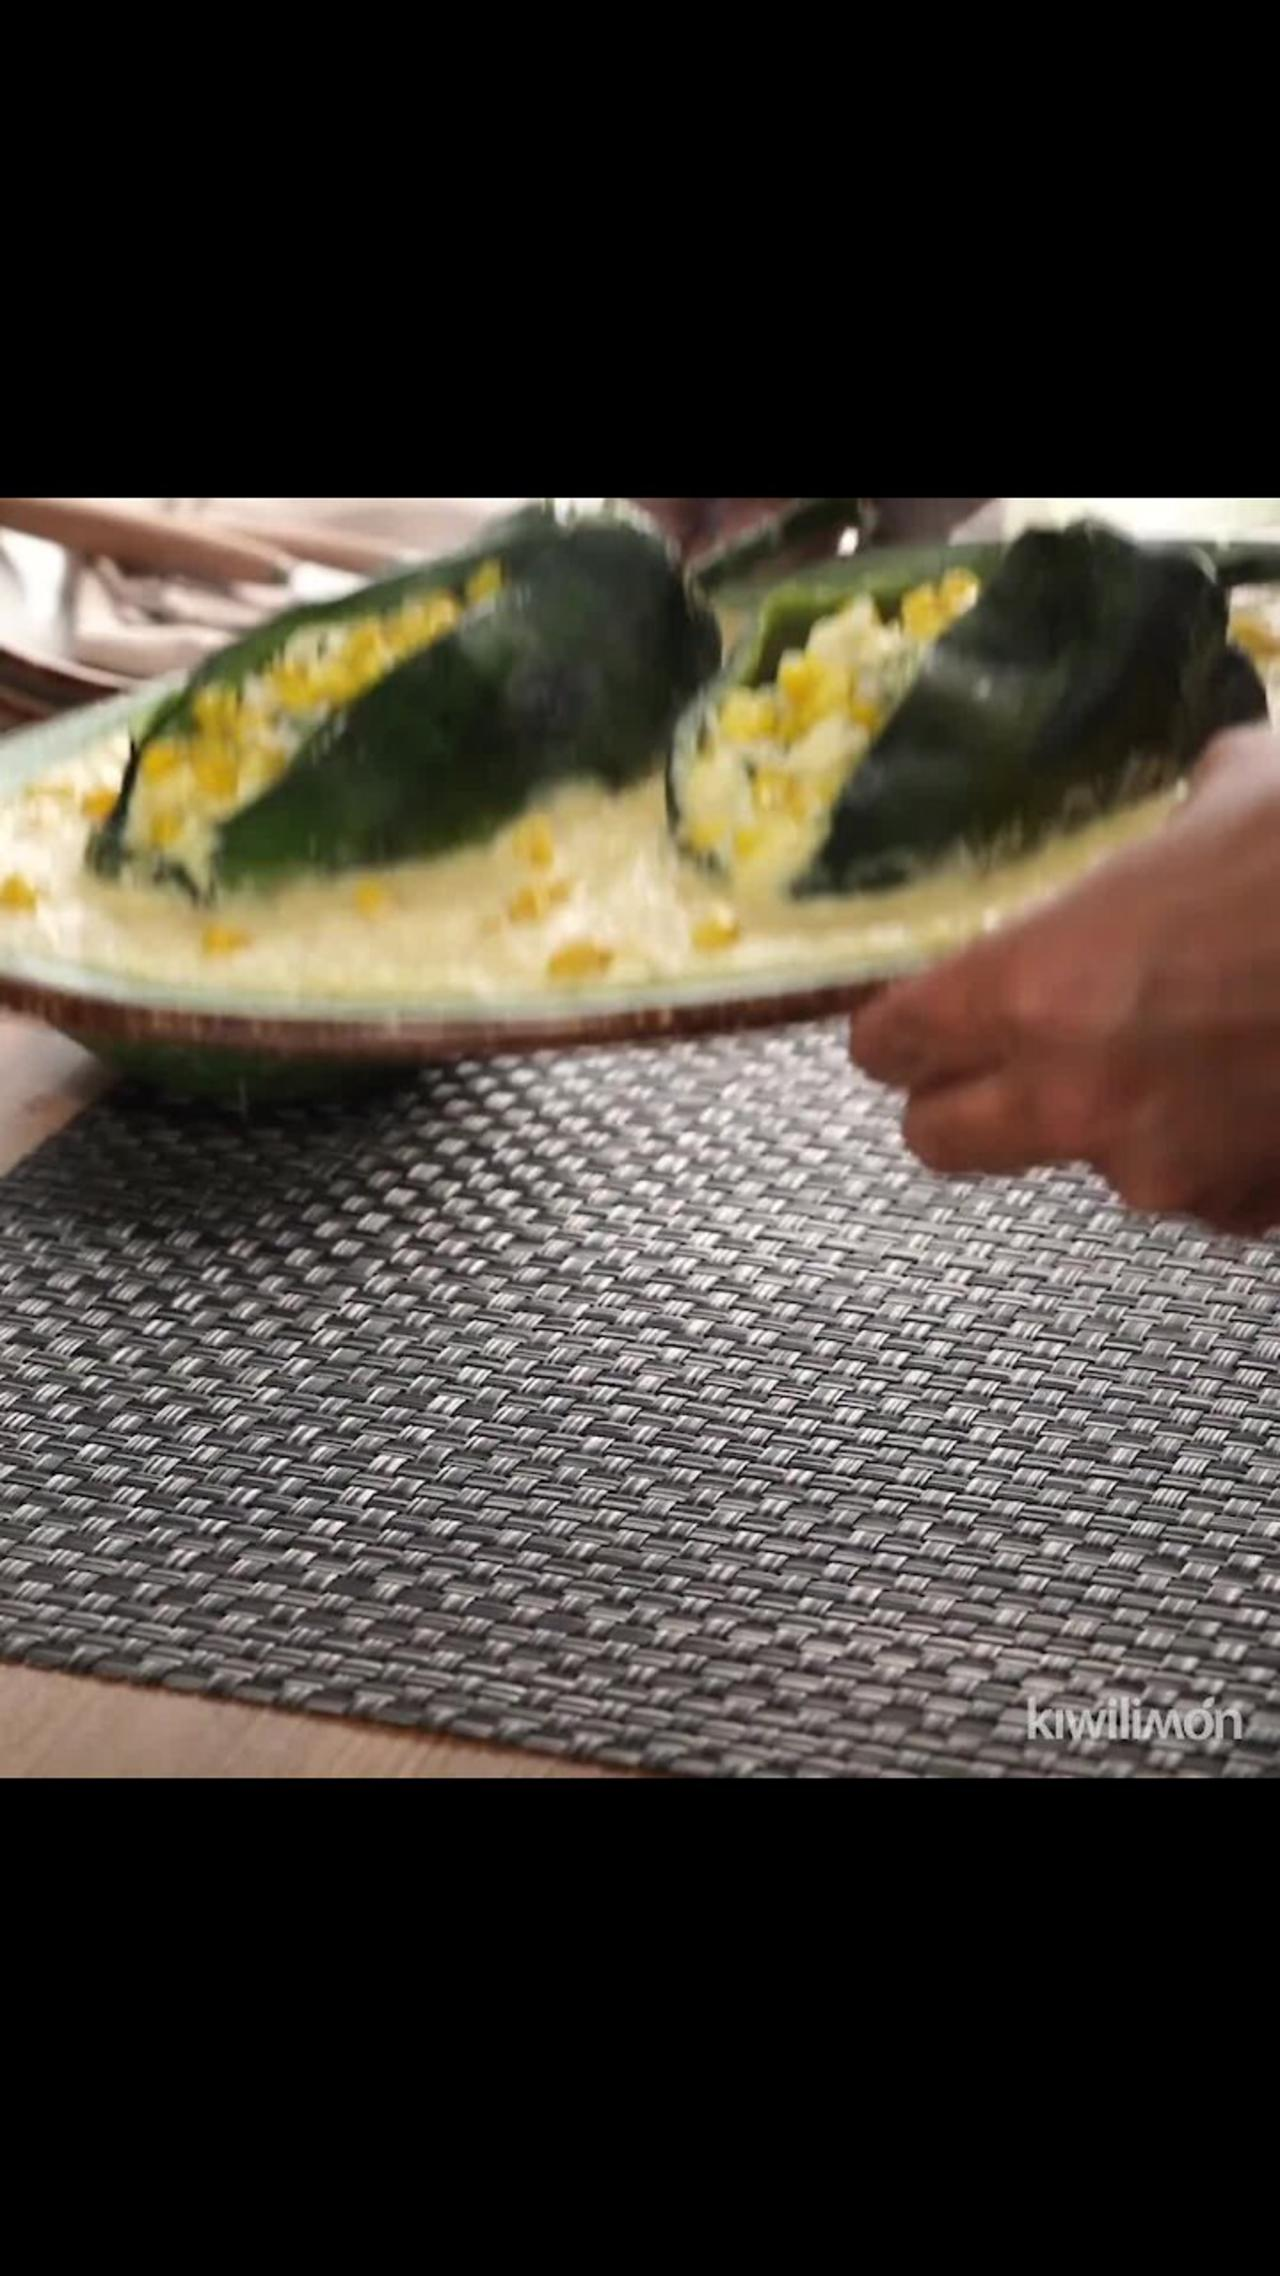 Chile Stuffed with Cheese with Corn